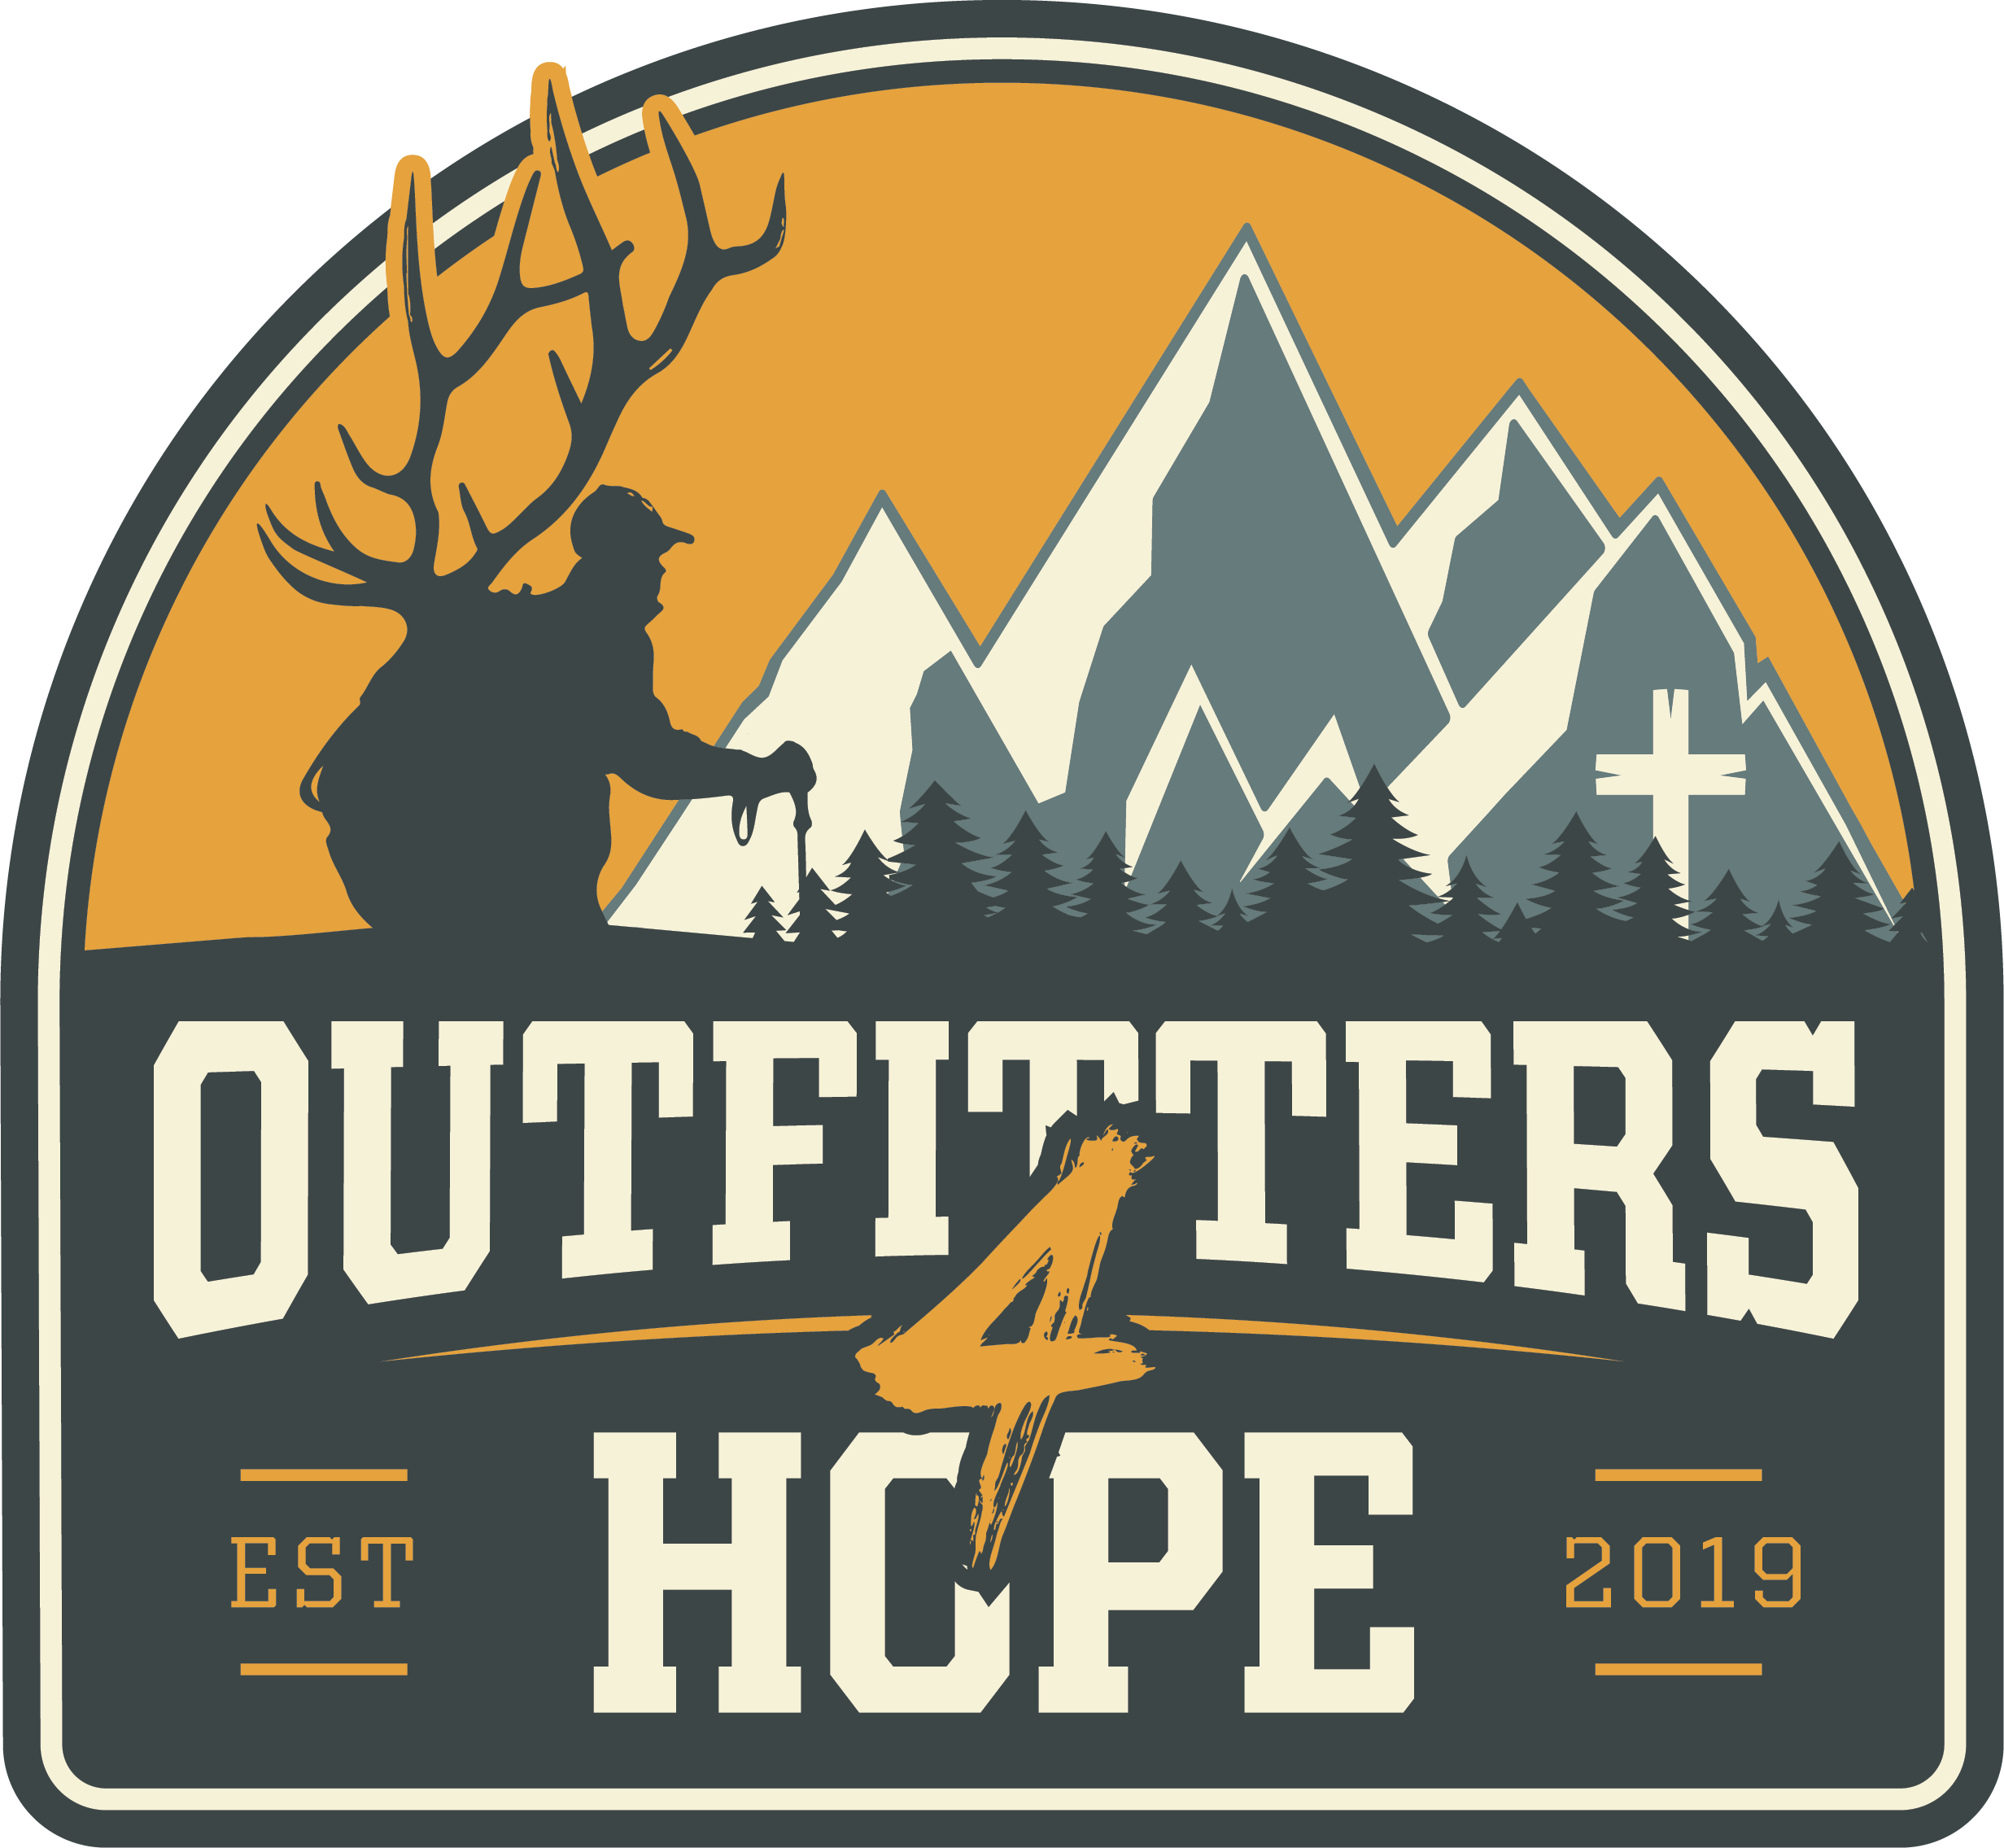 Outfitters For Hope